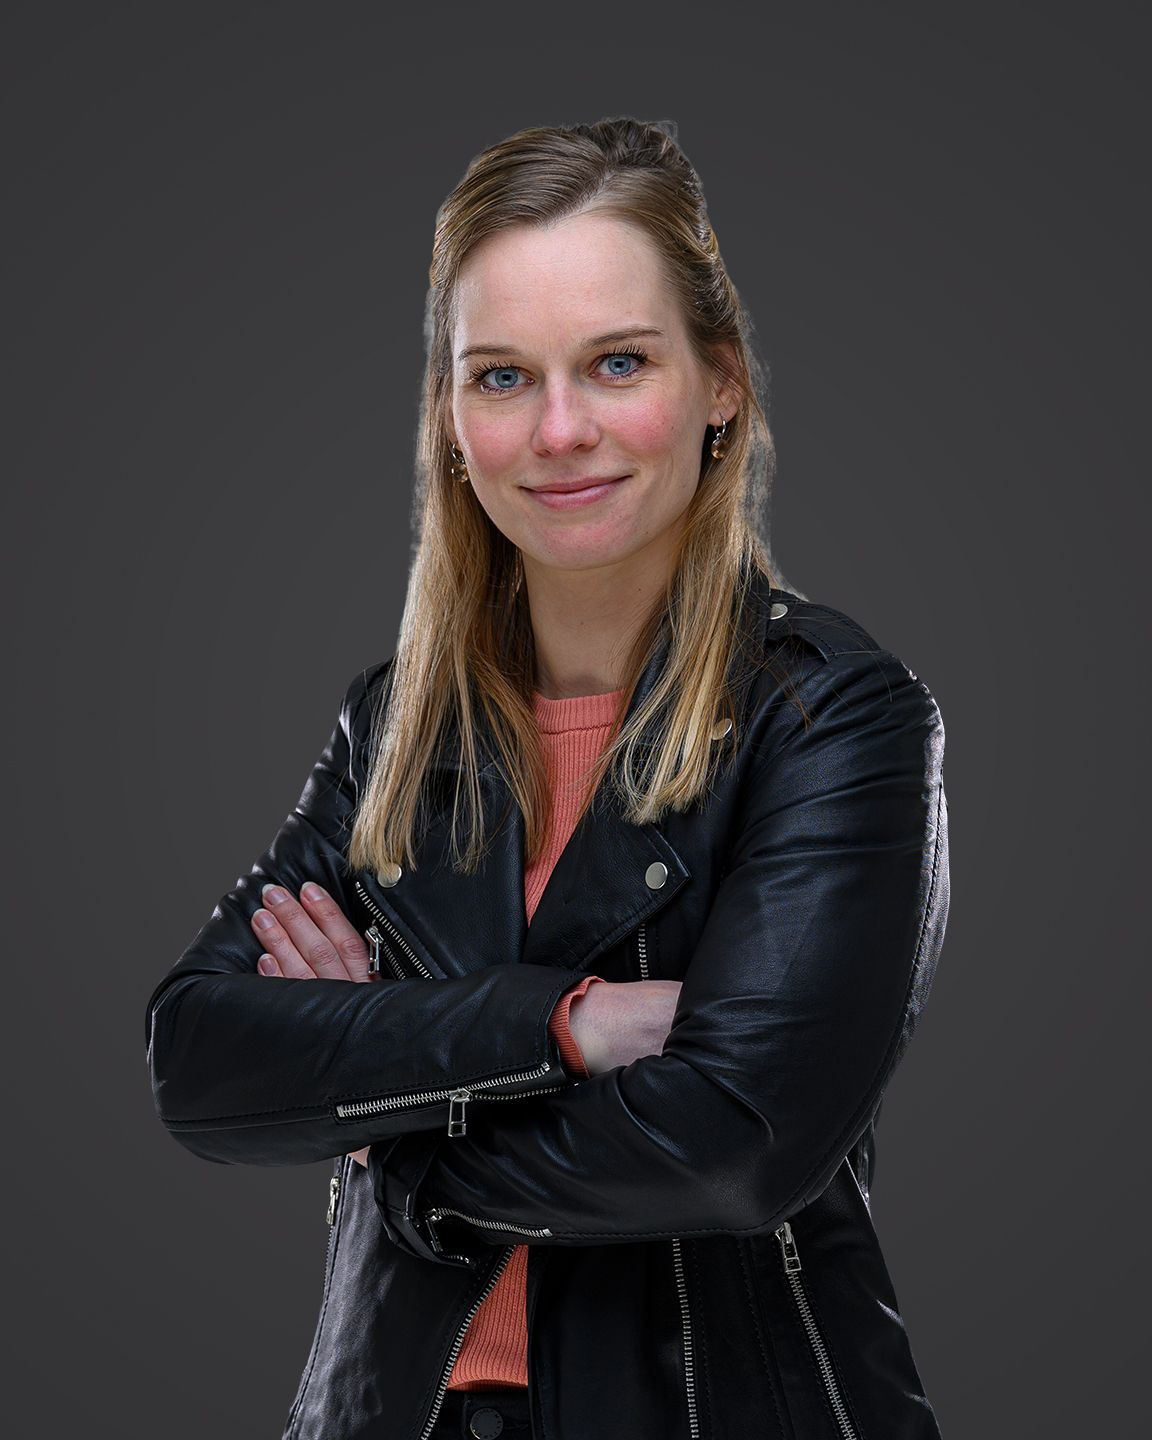 Evelien Knippers